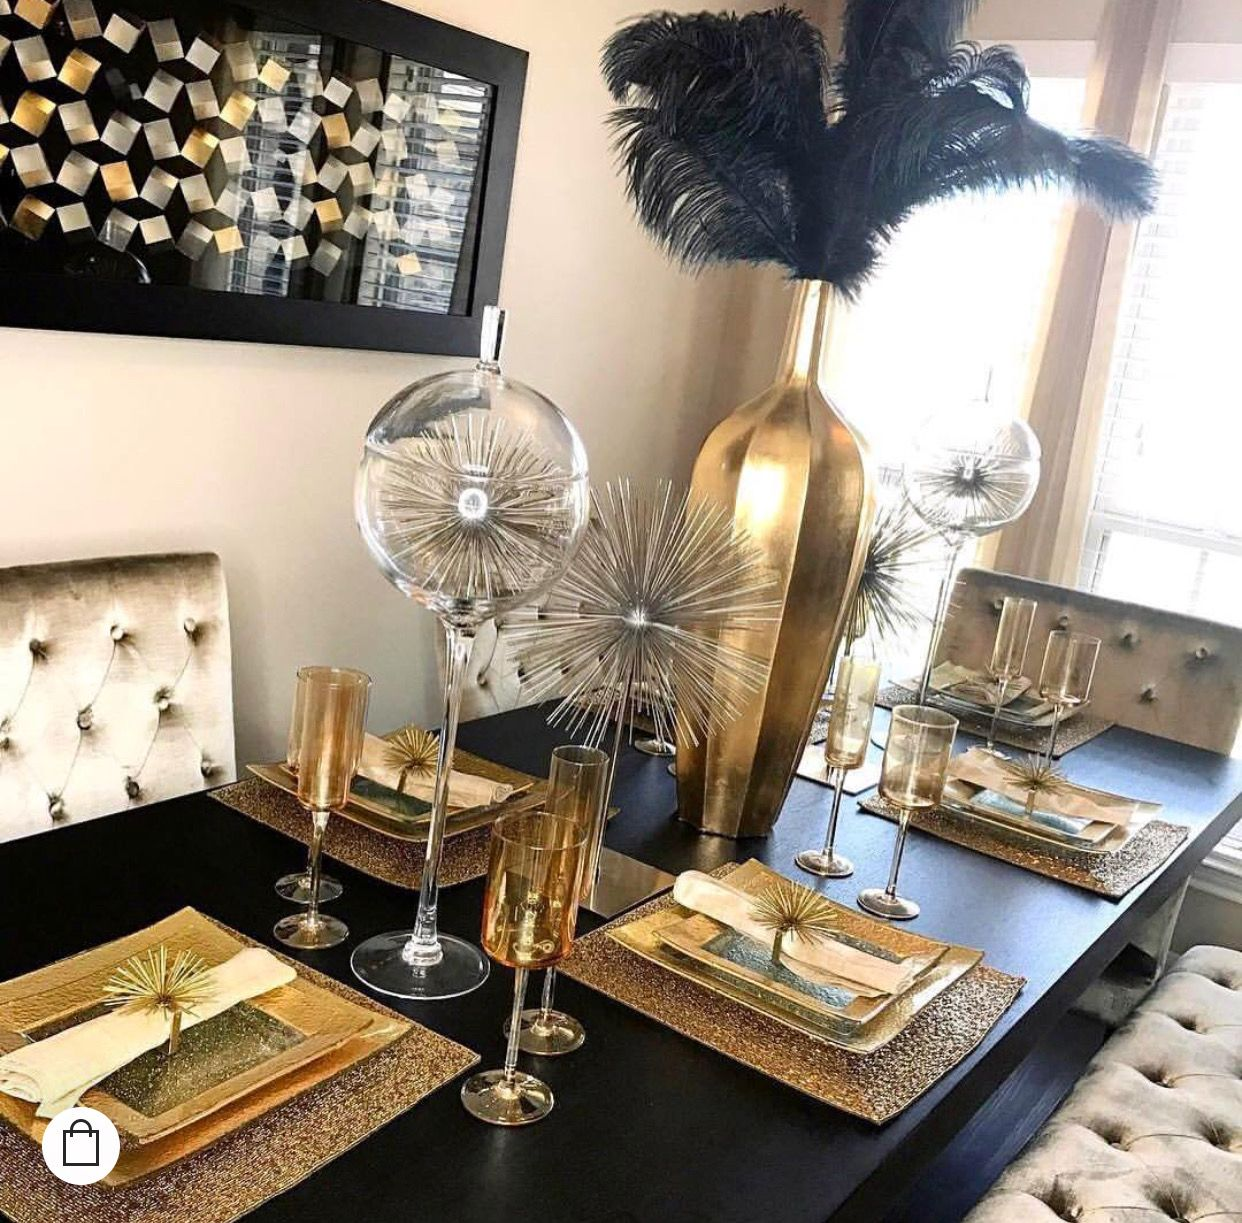 Pin By Ingrid Menger On House Gold Dining Room Table Dining Room Table Decor Gold Dining Room